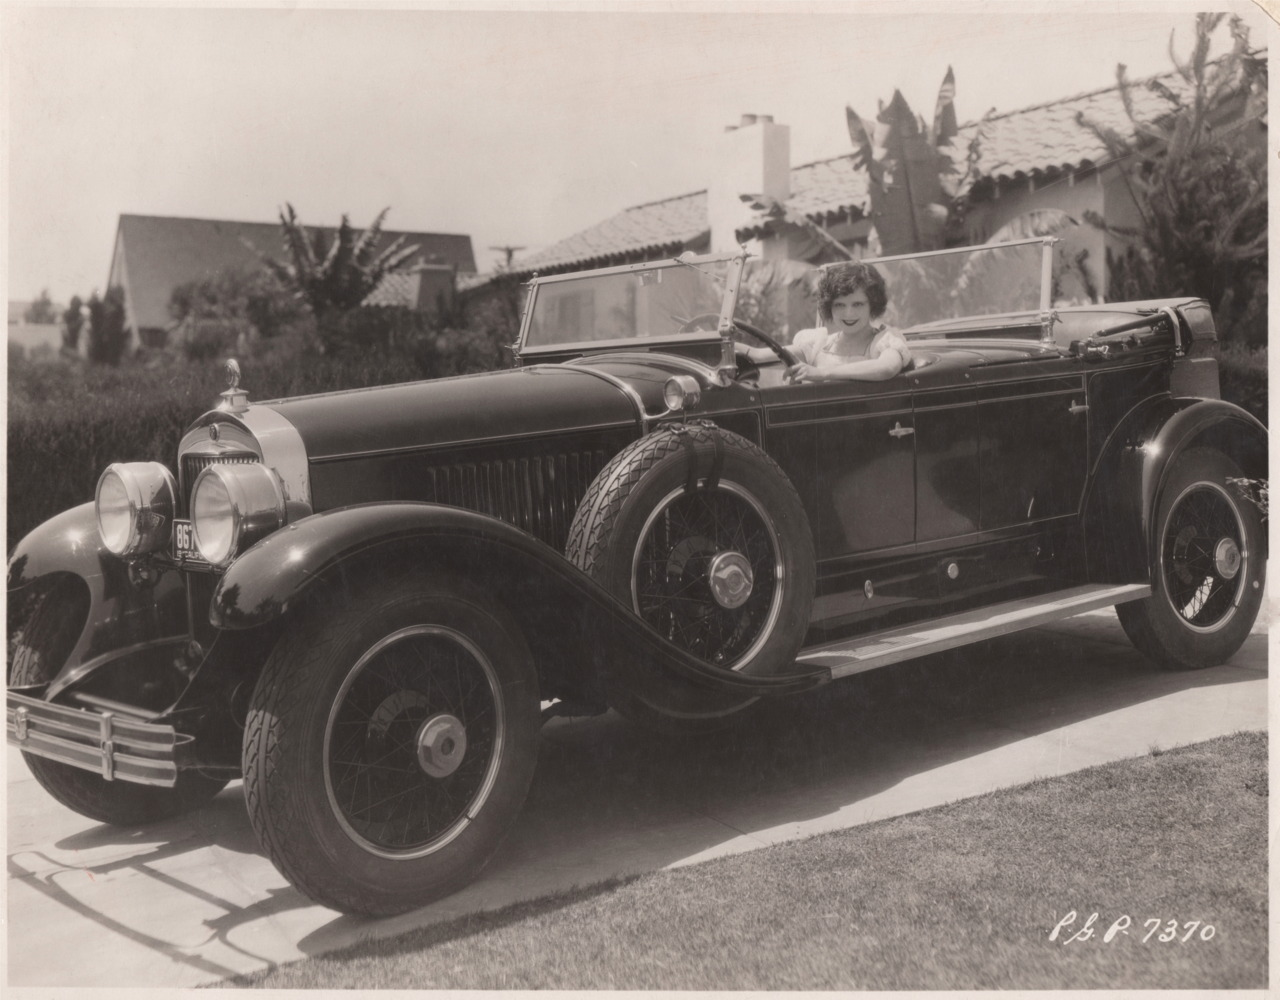 Clara Bow in a 1927 Cadillac Dual Cowl Phaeton in the driveway of her home at 512 N. Bedford Drive, Beverly Hills, CA.